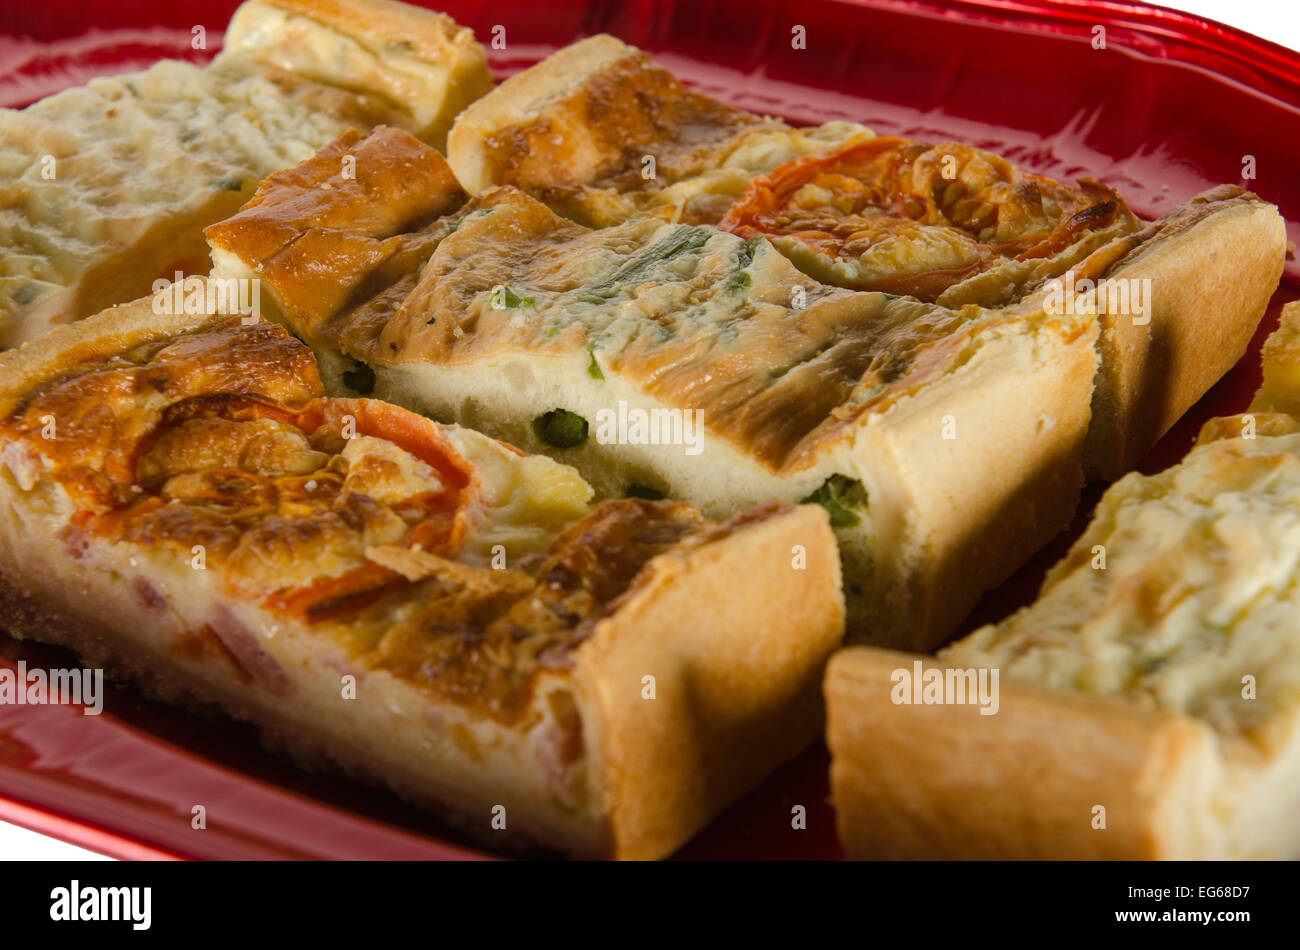 a plate of party food, quiche Lorain - Stock Image